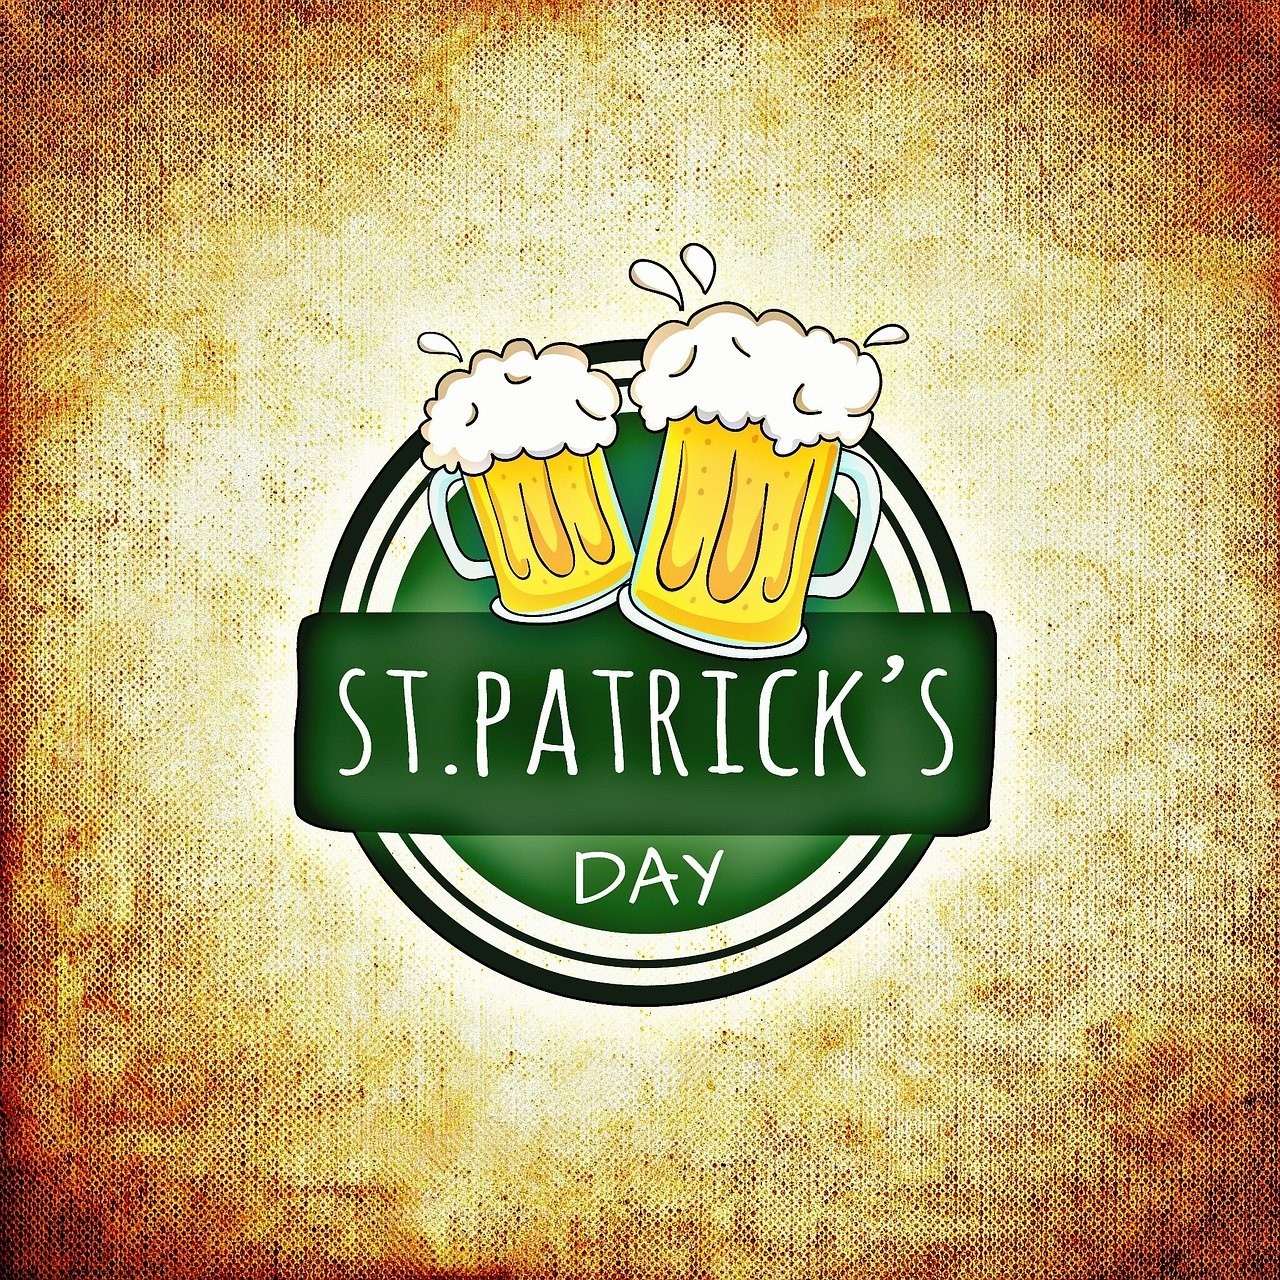 St Patrick's Day Quotes, Wishes, Sayings, Facts, Images, Poster